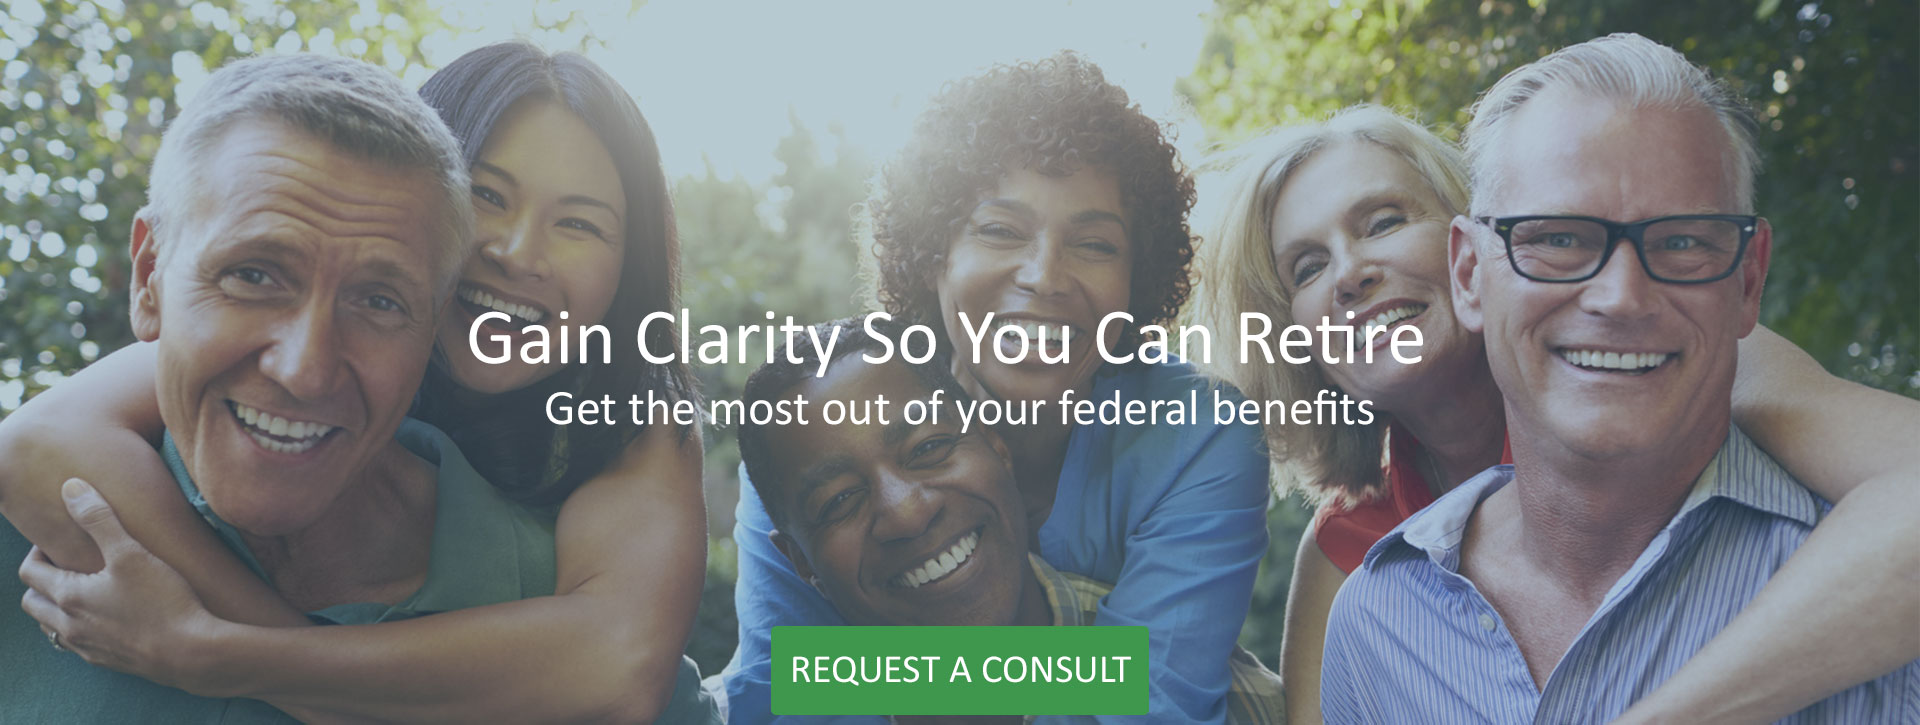 Gain clarity so you can retire